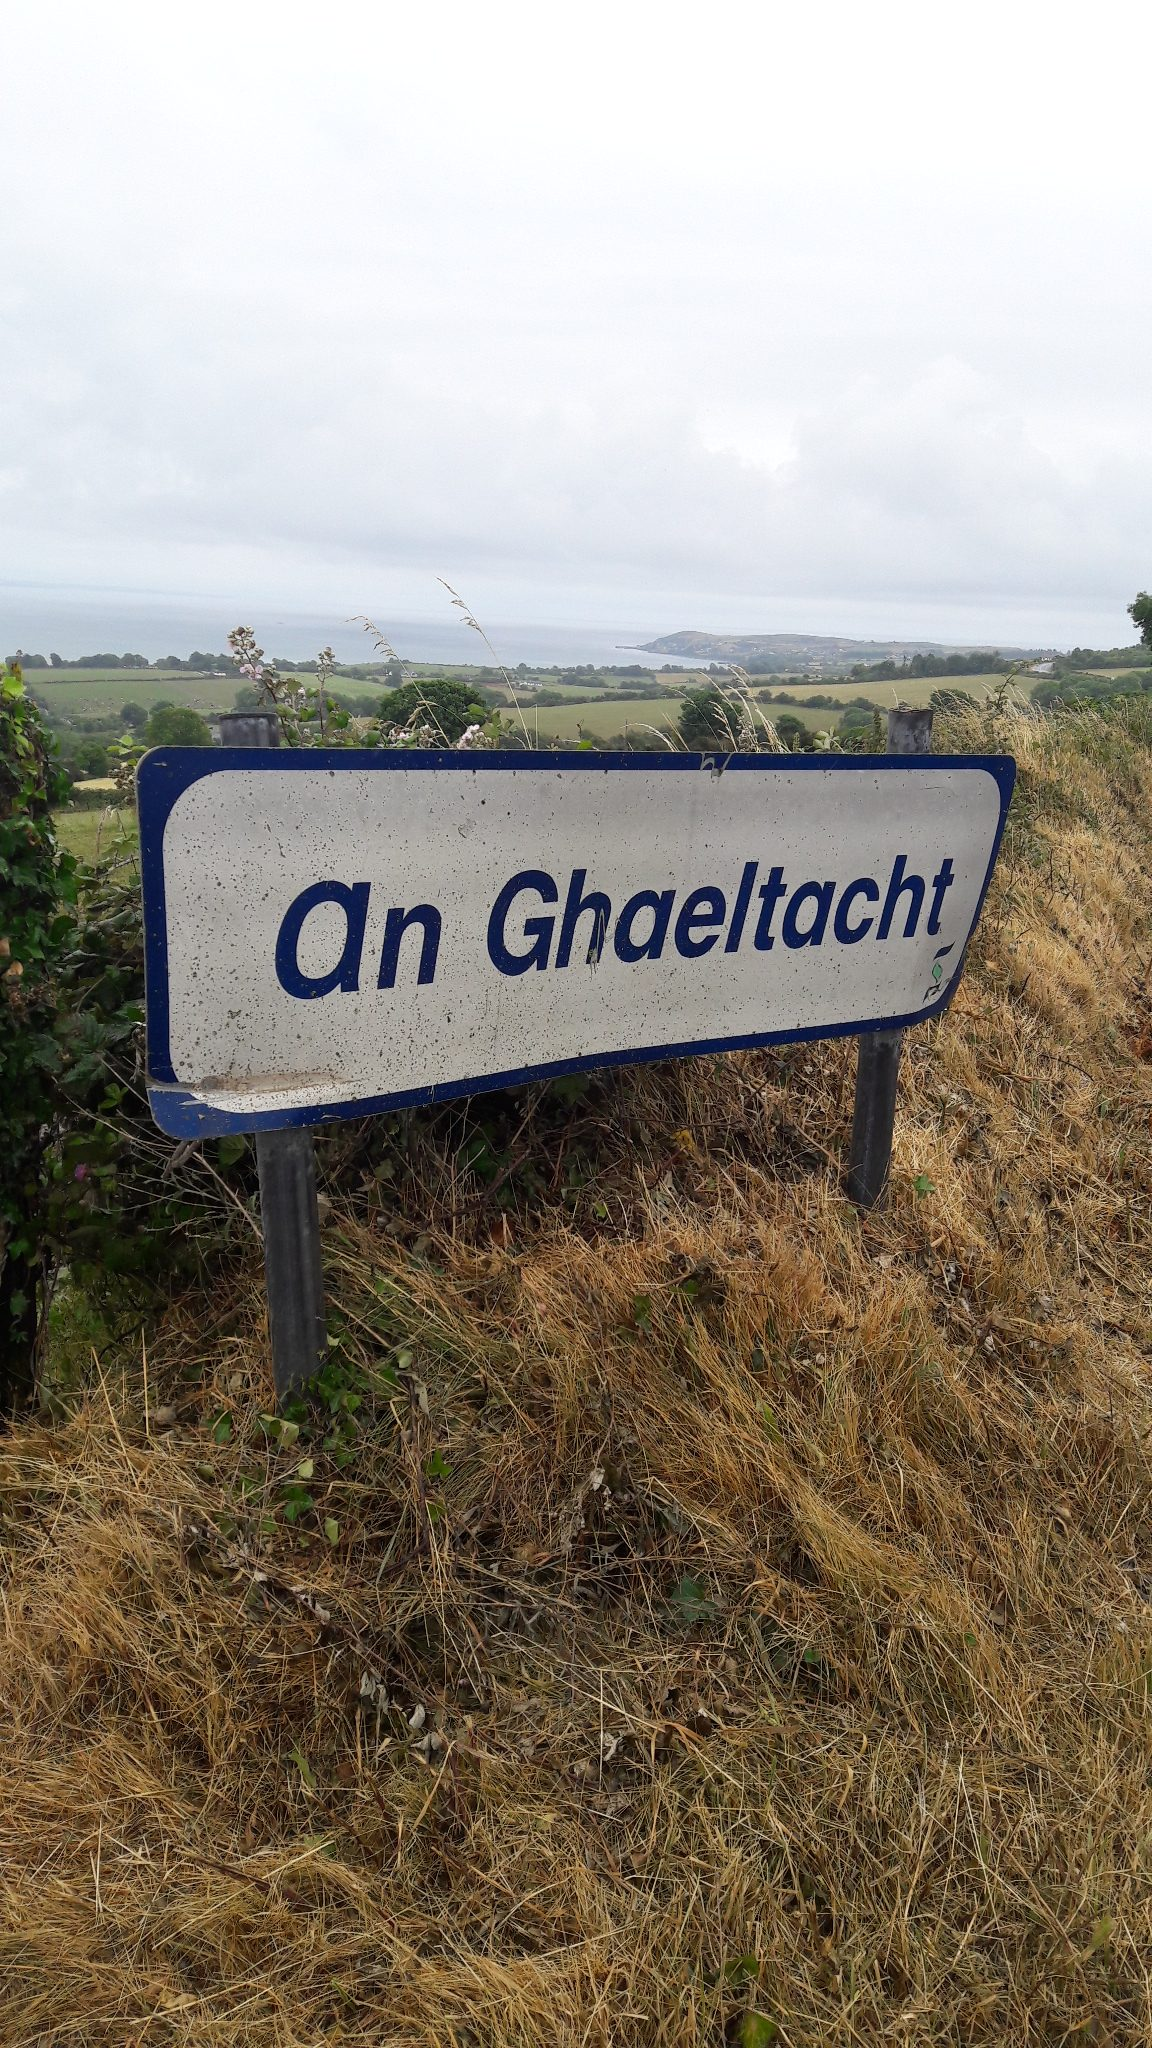 Gaelscoil - Irish Language school in Ireland